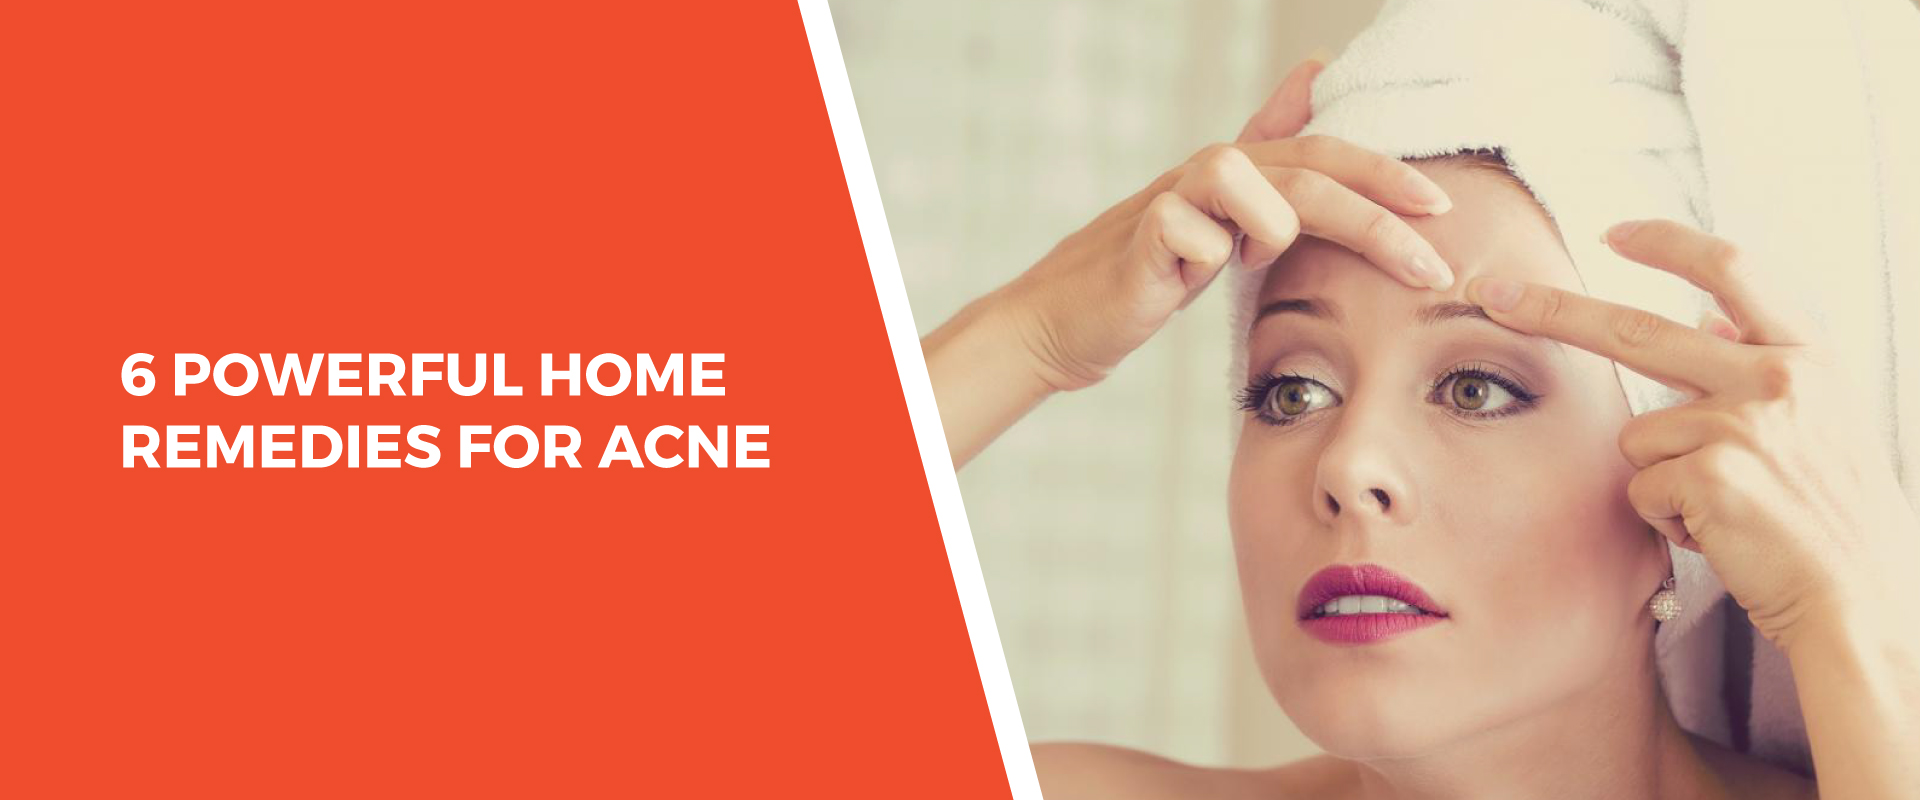 6 Powerful Home Remedies for Acne